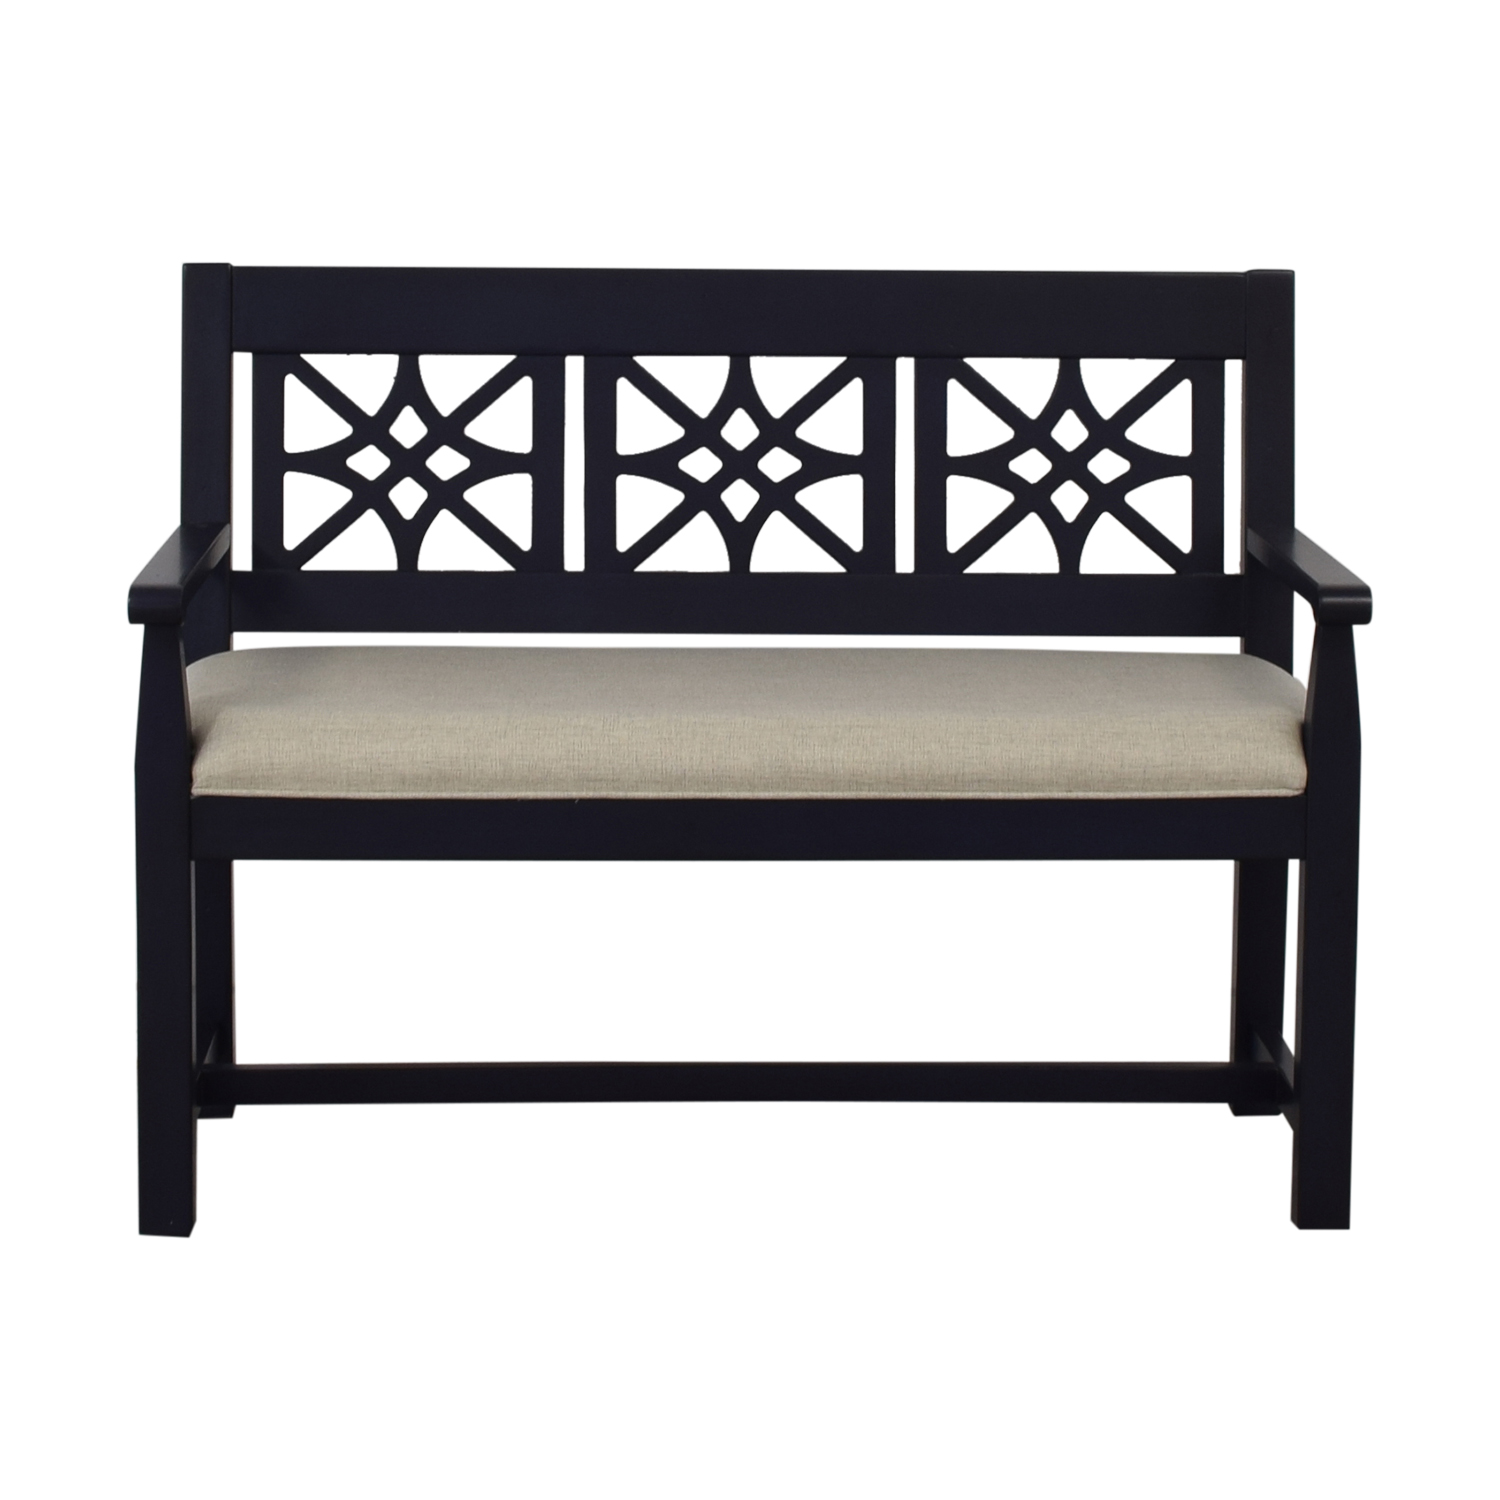 62 Off Trisha Yearwood Cracker Jack Wood Entryway Bench Chairs